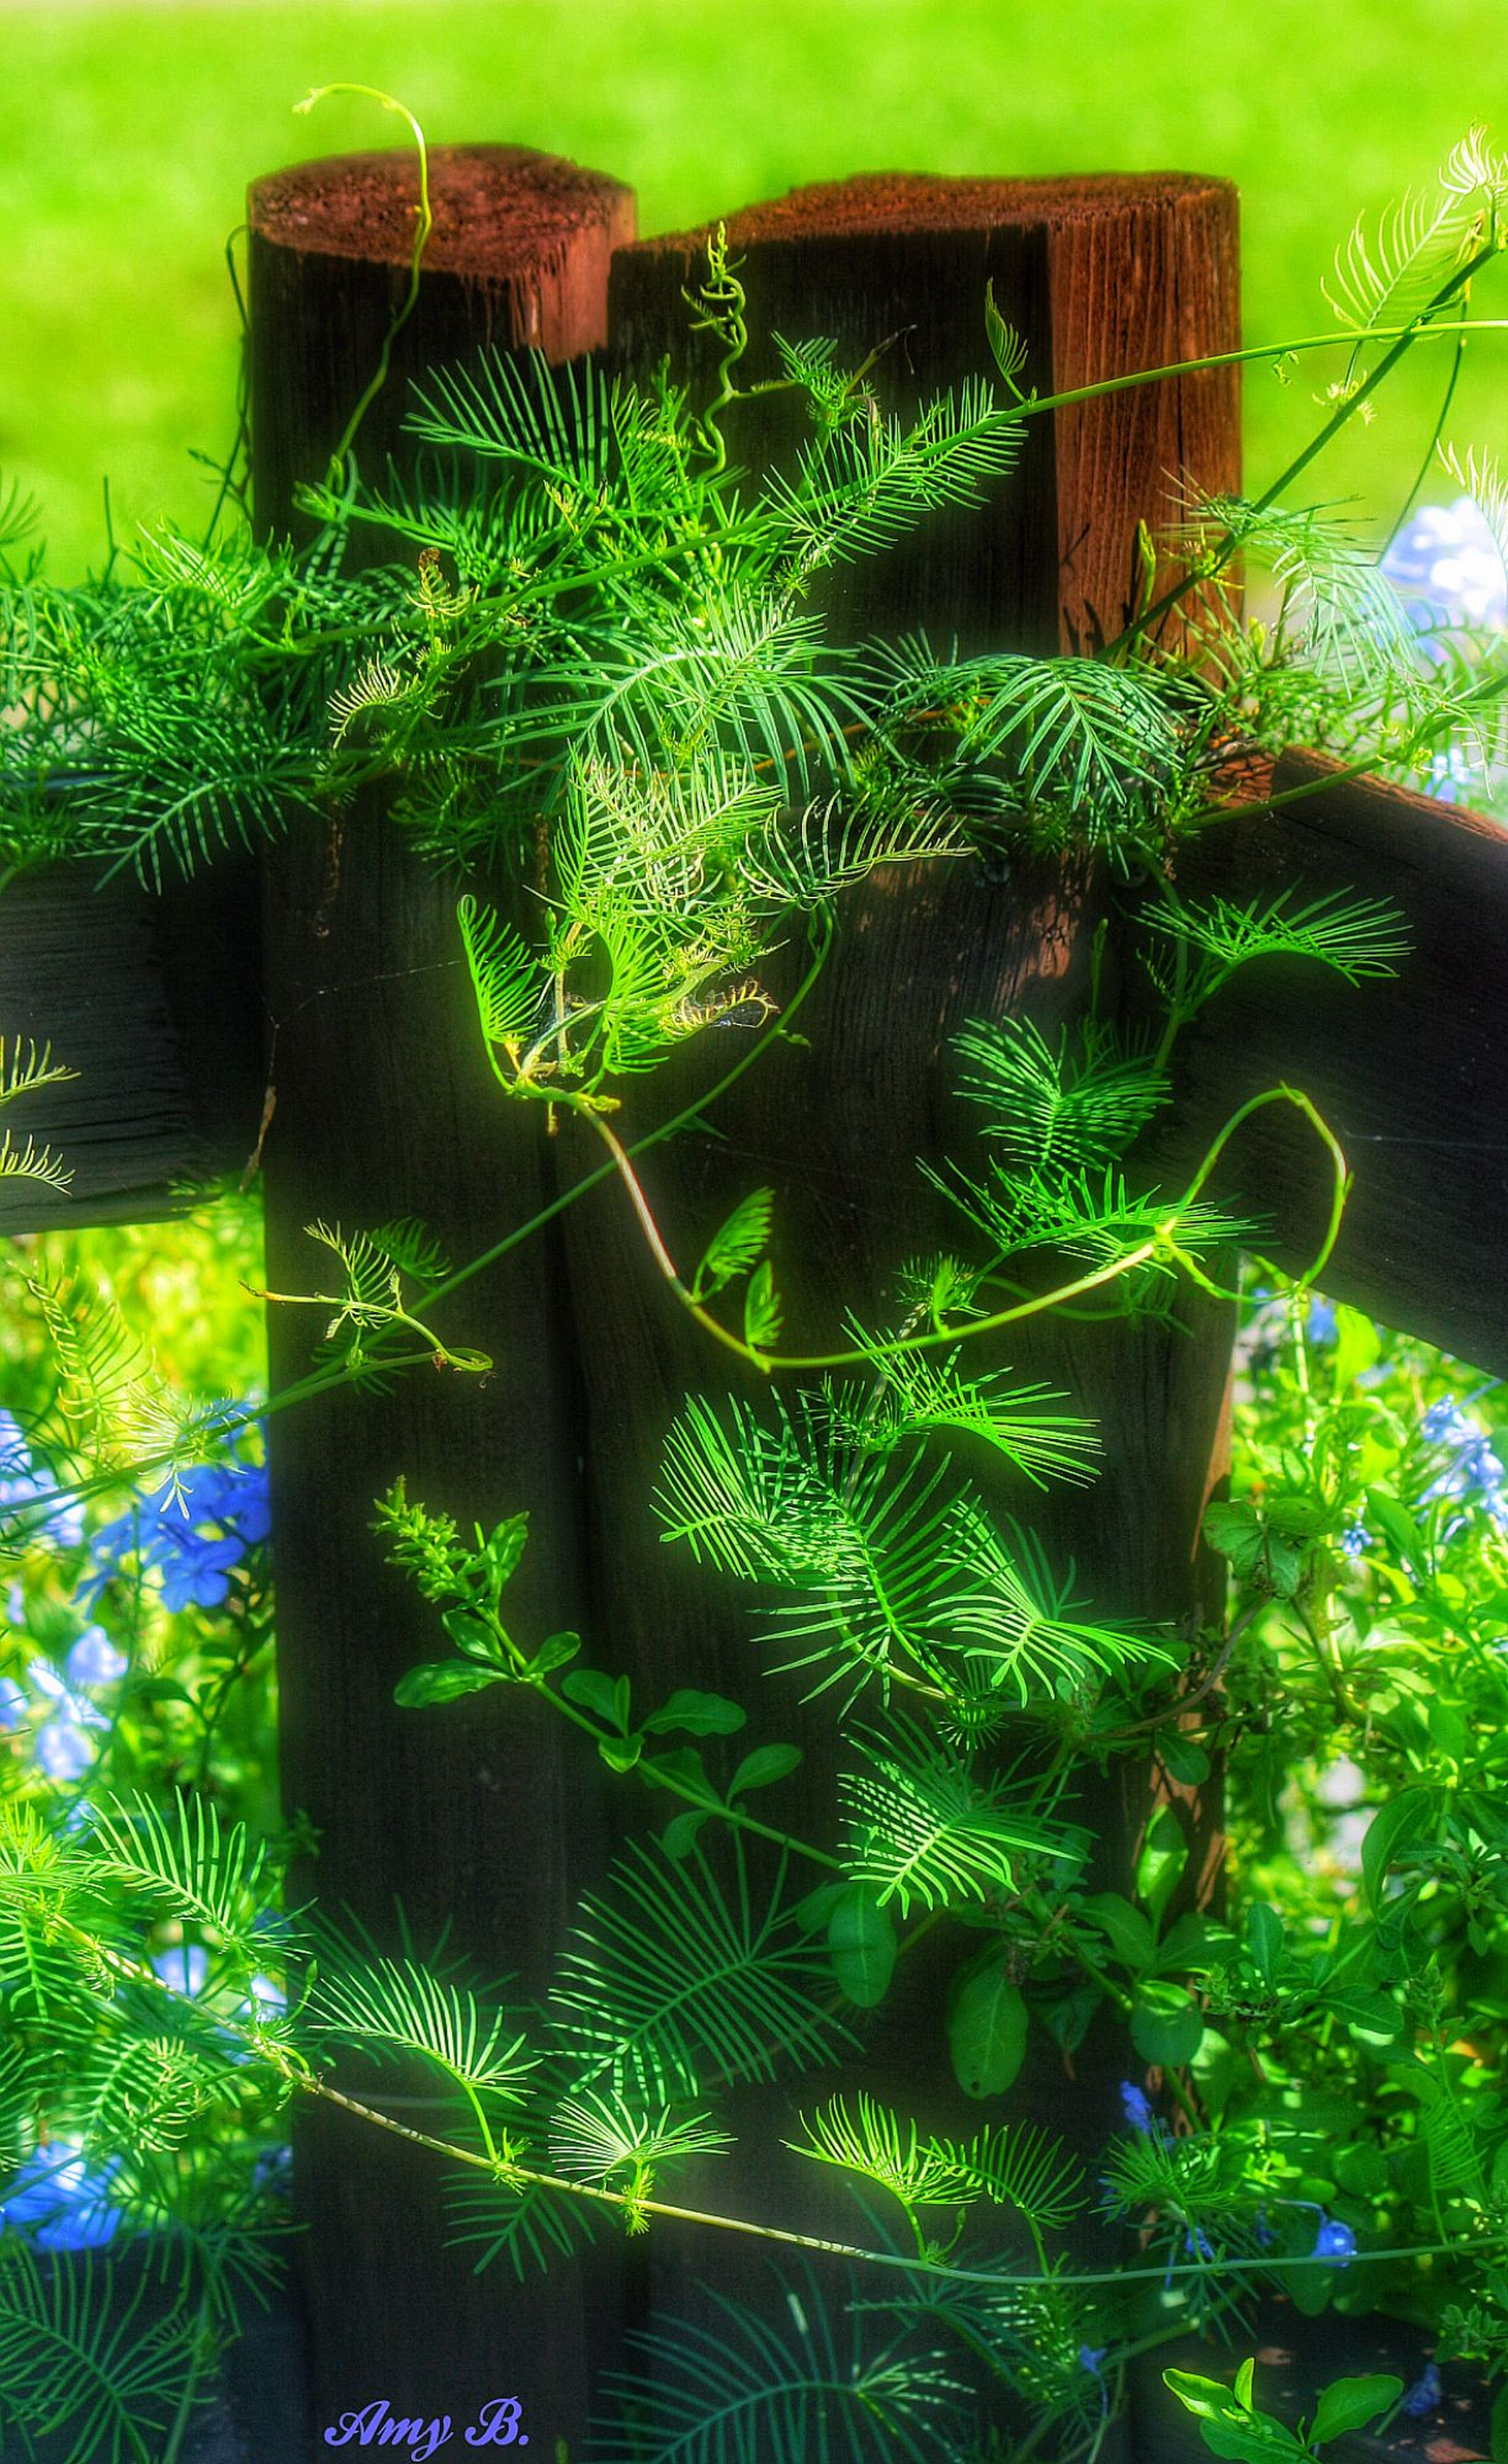 green color, tree, growth, nature, tree trunk, plant, tranquility, park - man made space, outdoors, day, no people, palm tree, branch, beauty in nature, green, field, wood - material, built structure, grass, fence